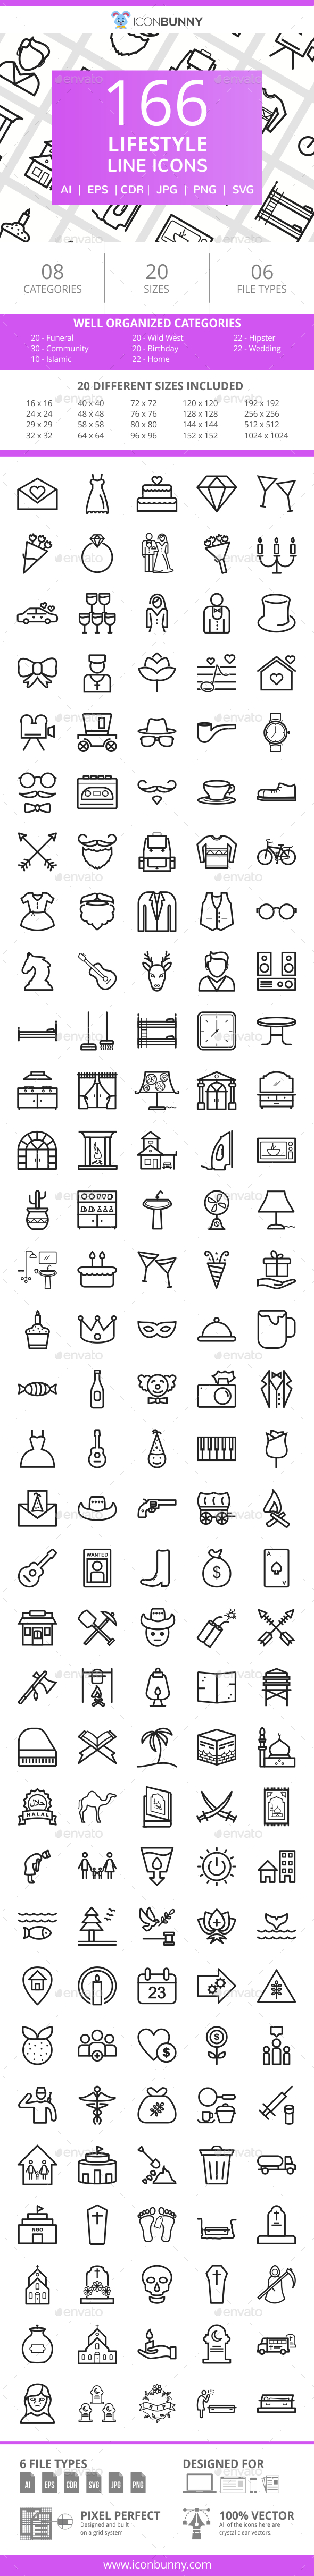 166 Lifestyle Line Icons - Icons